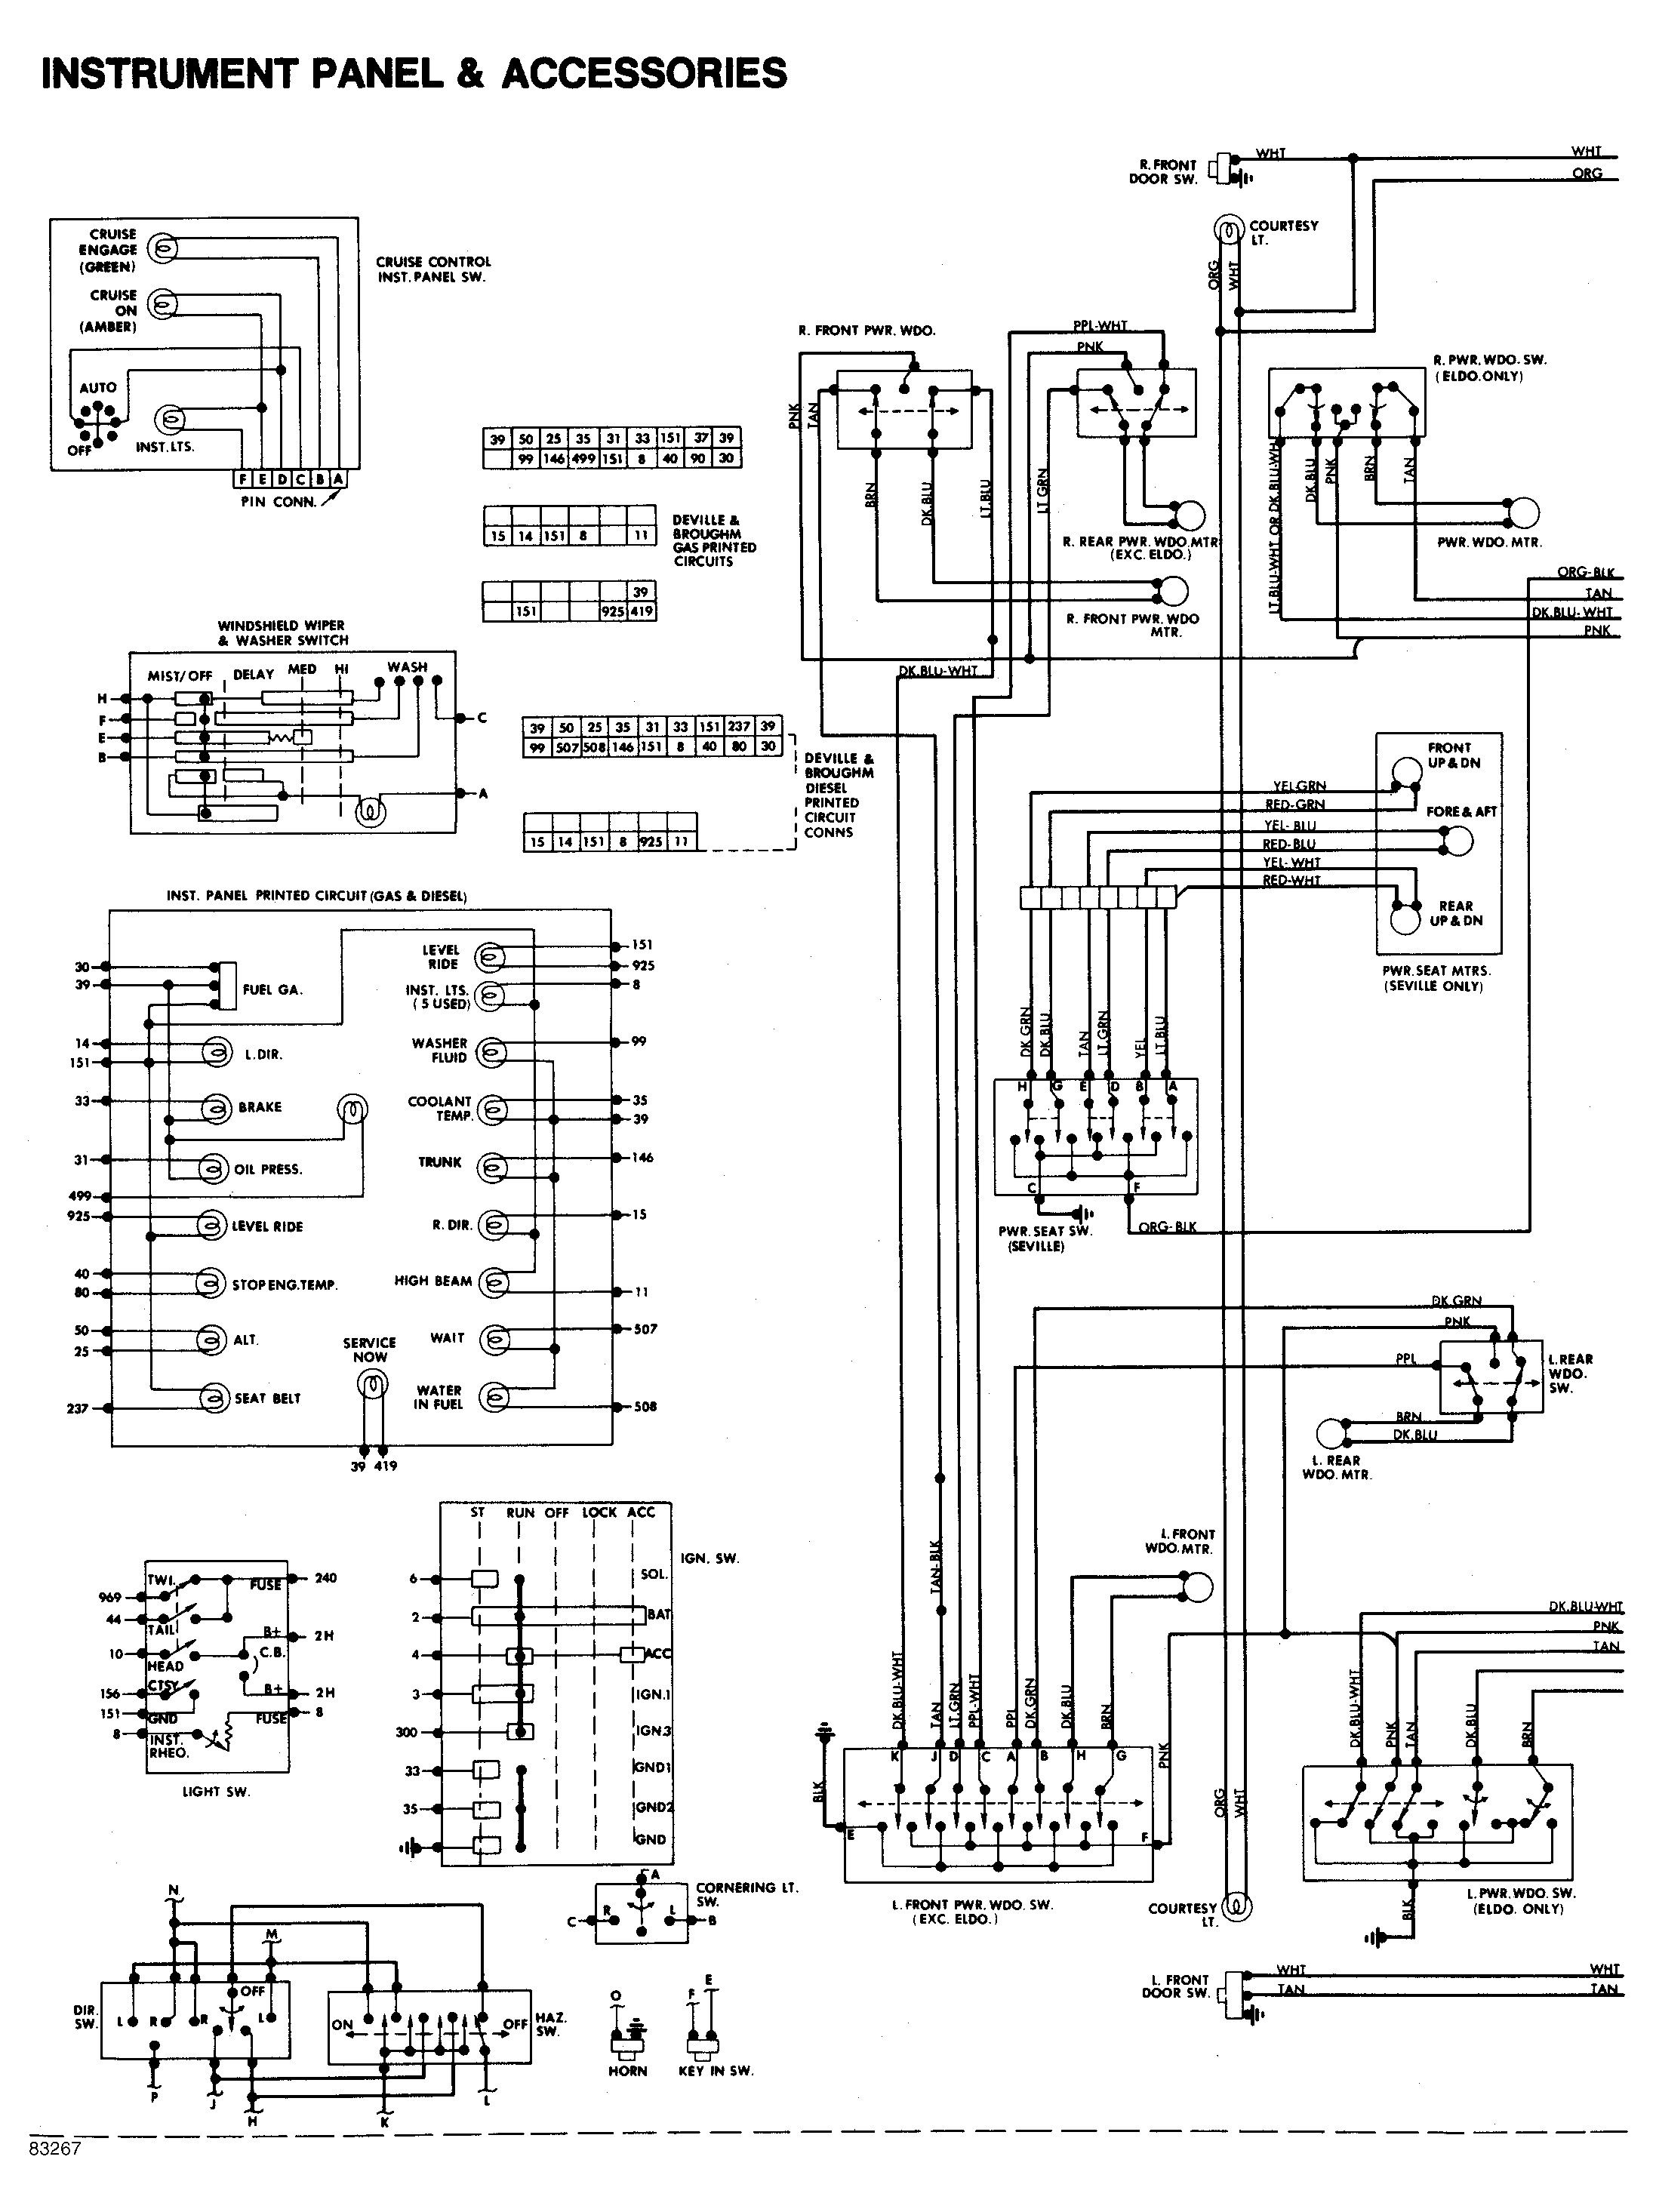 Wiring Diagram Moreover 2001 Porsche Boxster Fuse Box Diagram In